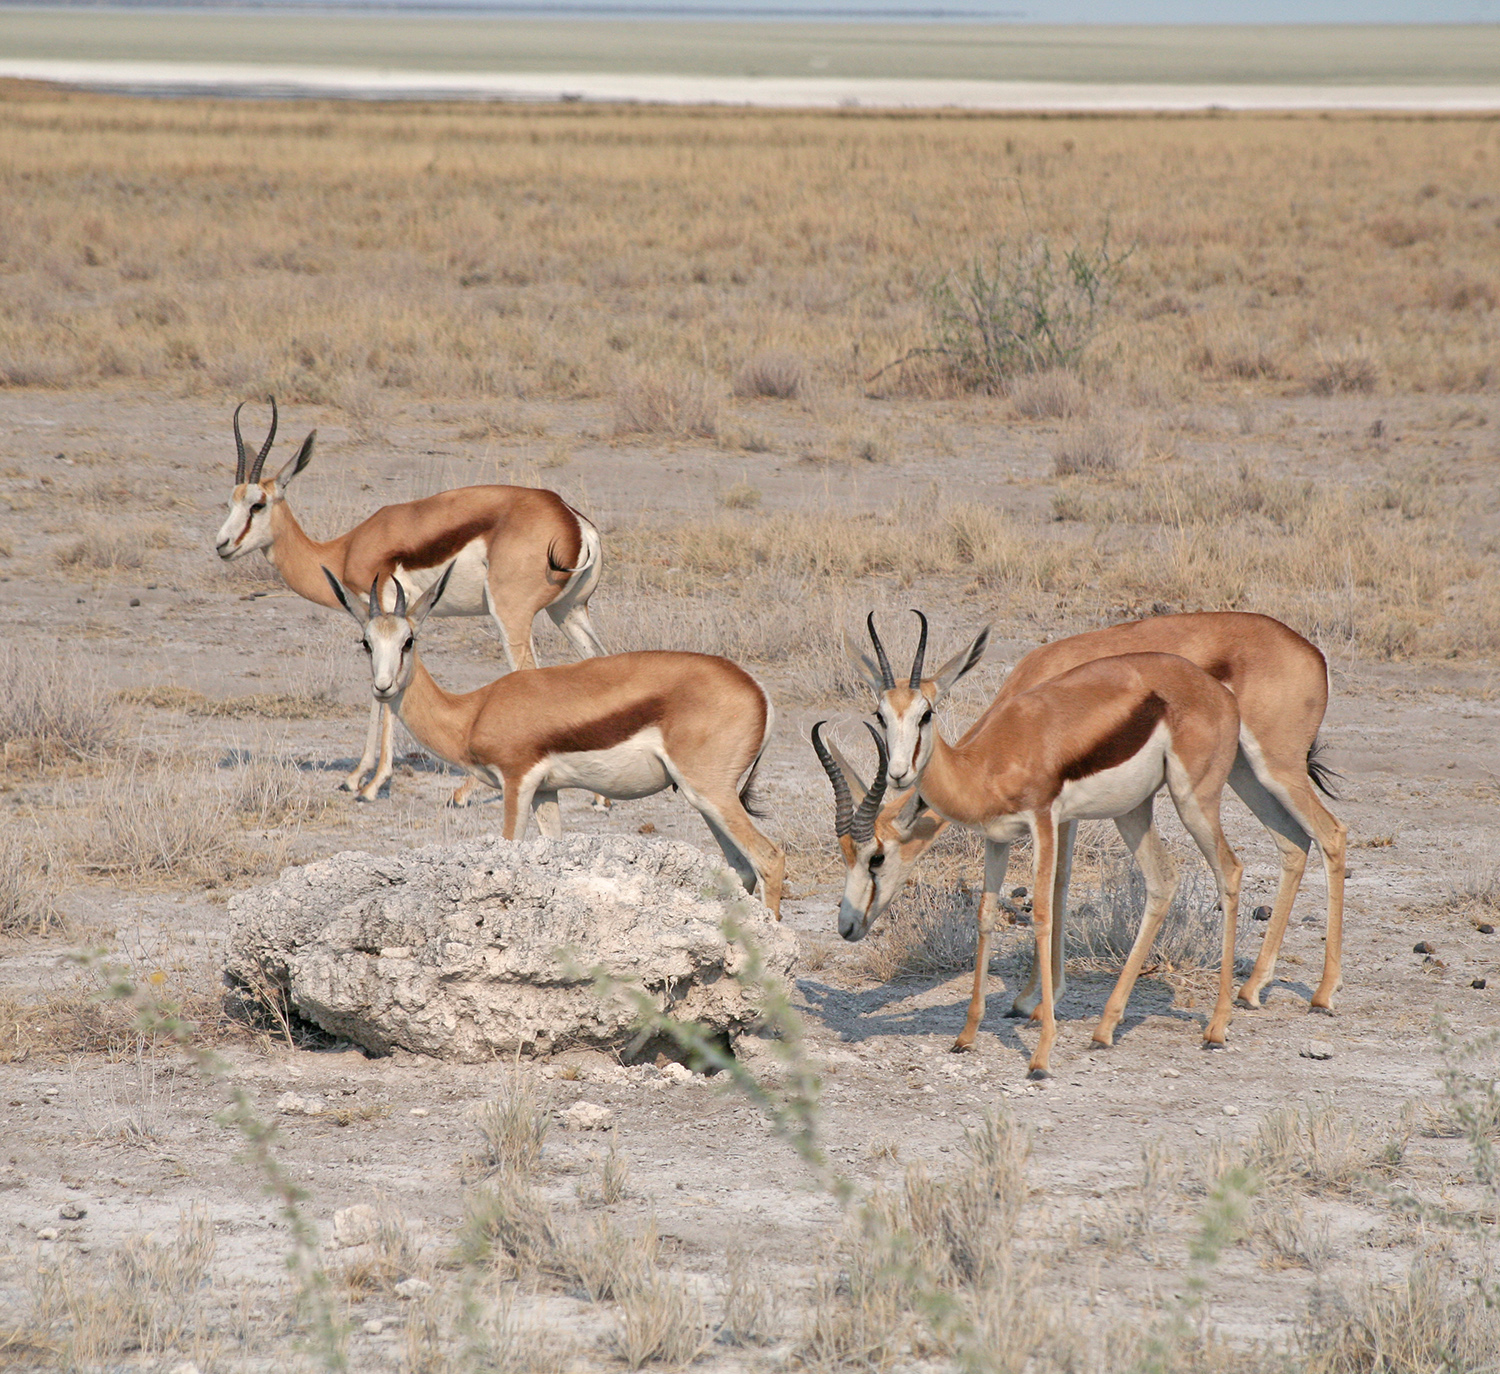 Etosha-nationa-park-safari-watering-kudu